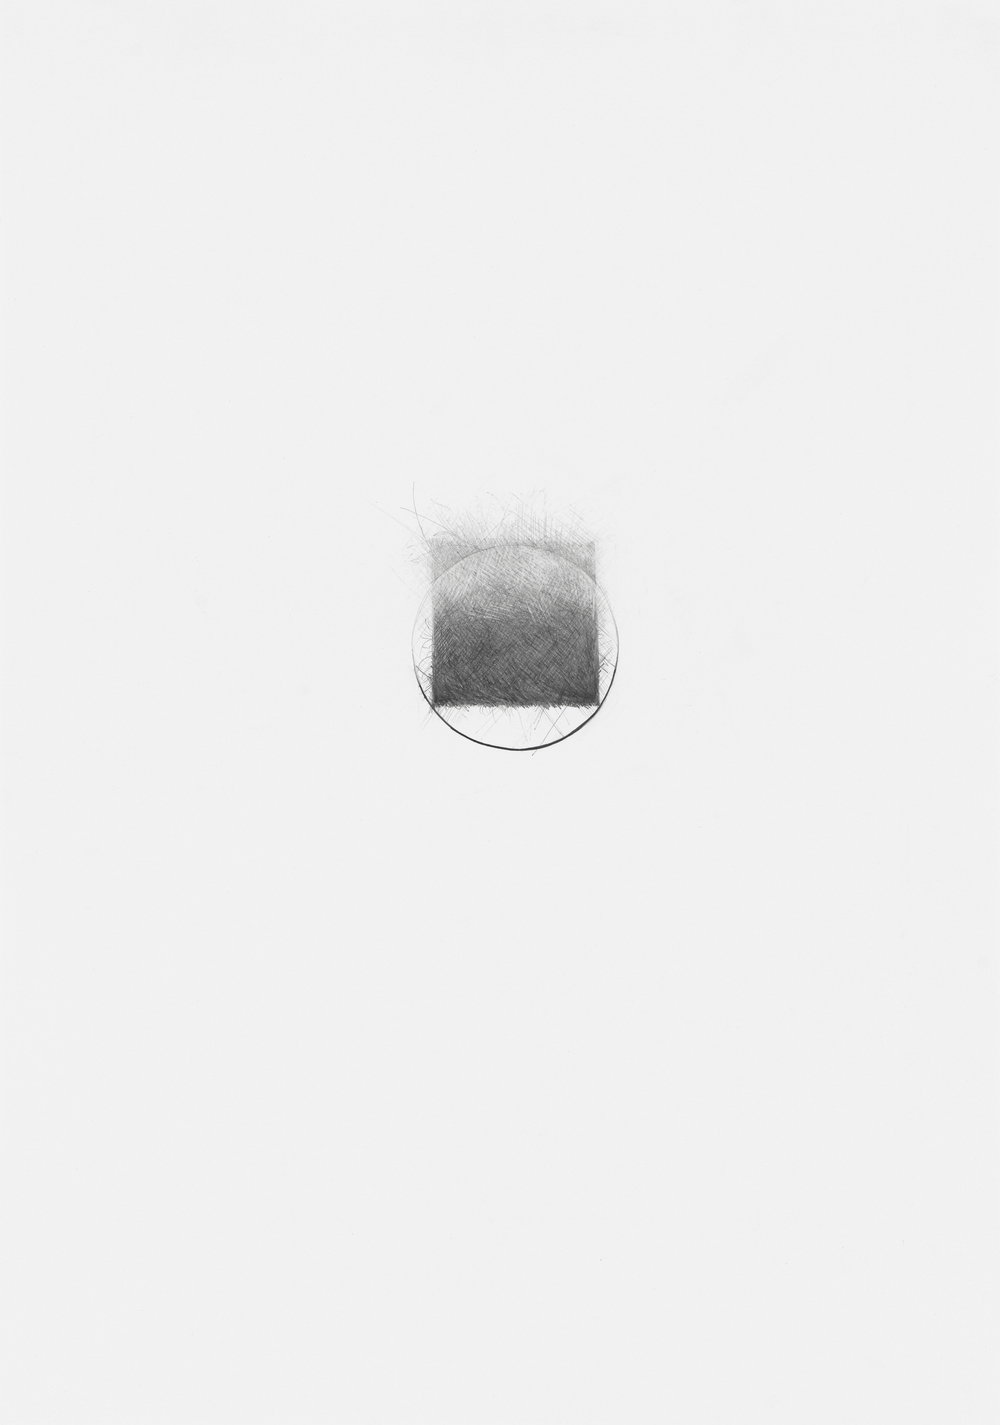 Ghidini, Grace 1, 2015, graphite and mica dust on paper, 28 1/2 x 22 1/2 inches